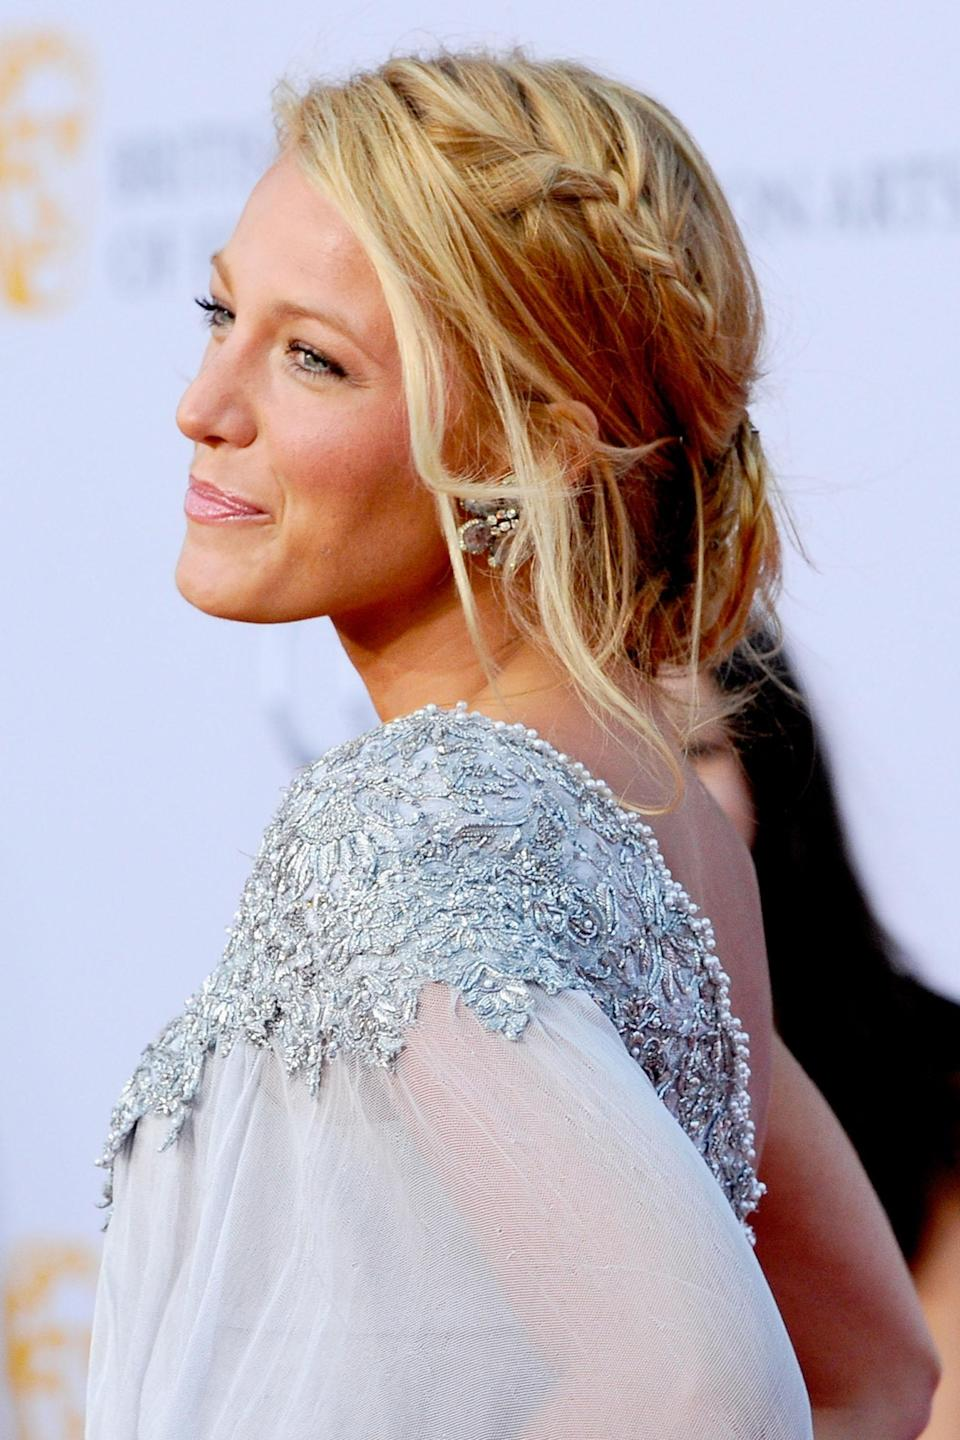 "<h3>Blake Lively</h3> <br>If there's one celeb who <em>loves </em>a French braid, it's <a href=""https://www.refinery29.com/en-us/2018/09/209954/blake-lively-hair-products"" rel=""nofollow noopener"" target=""_blank"" data-ylk=""slk:Blake Lively"" class=""link rapid-noclick-resp"">Blake Lively</a>. She's worn them every which way, but here she shows how to weave one into a <a href=""https://www.refinery29.com/en-us/messy-updos"" rel=""nofollow noopener"" target=""_blank"" data-ylk=""slk:messy low bun"" class=""link rapid-noclick-resp"">messy low bun</a>, a summer-perfect style to wear to any occasion — even if this summer, it's just a long walk around the block.<span class=""copyright"">Photo: Kevork Djansezian/Getty Images. </span><br>"